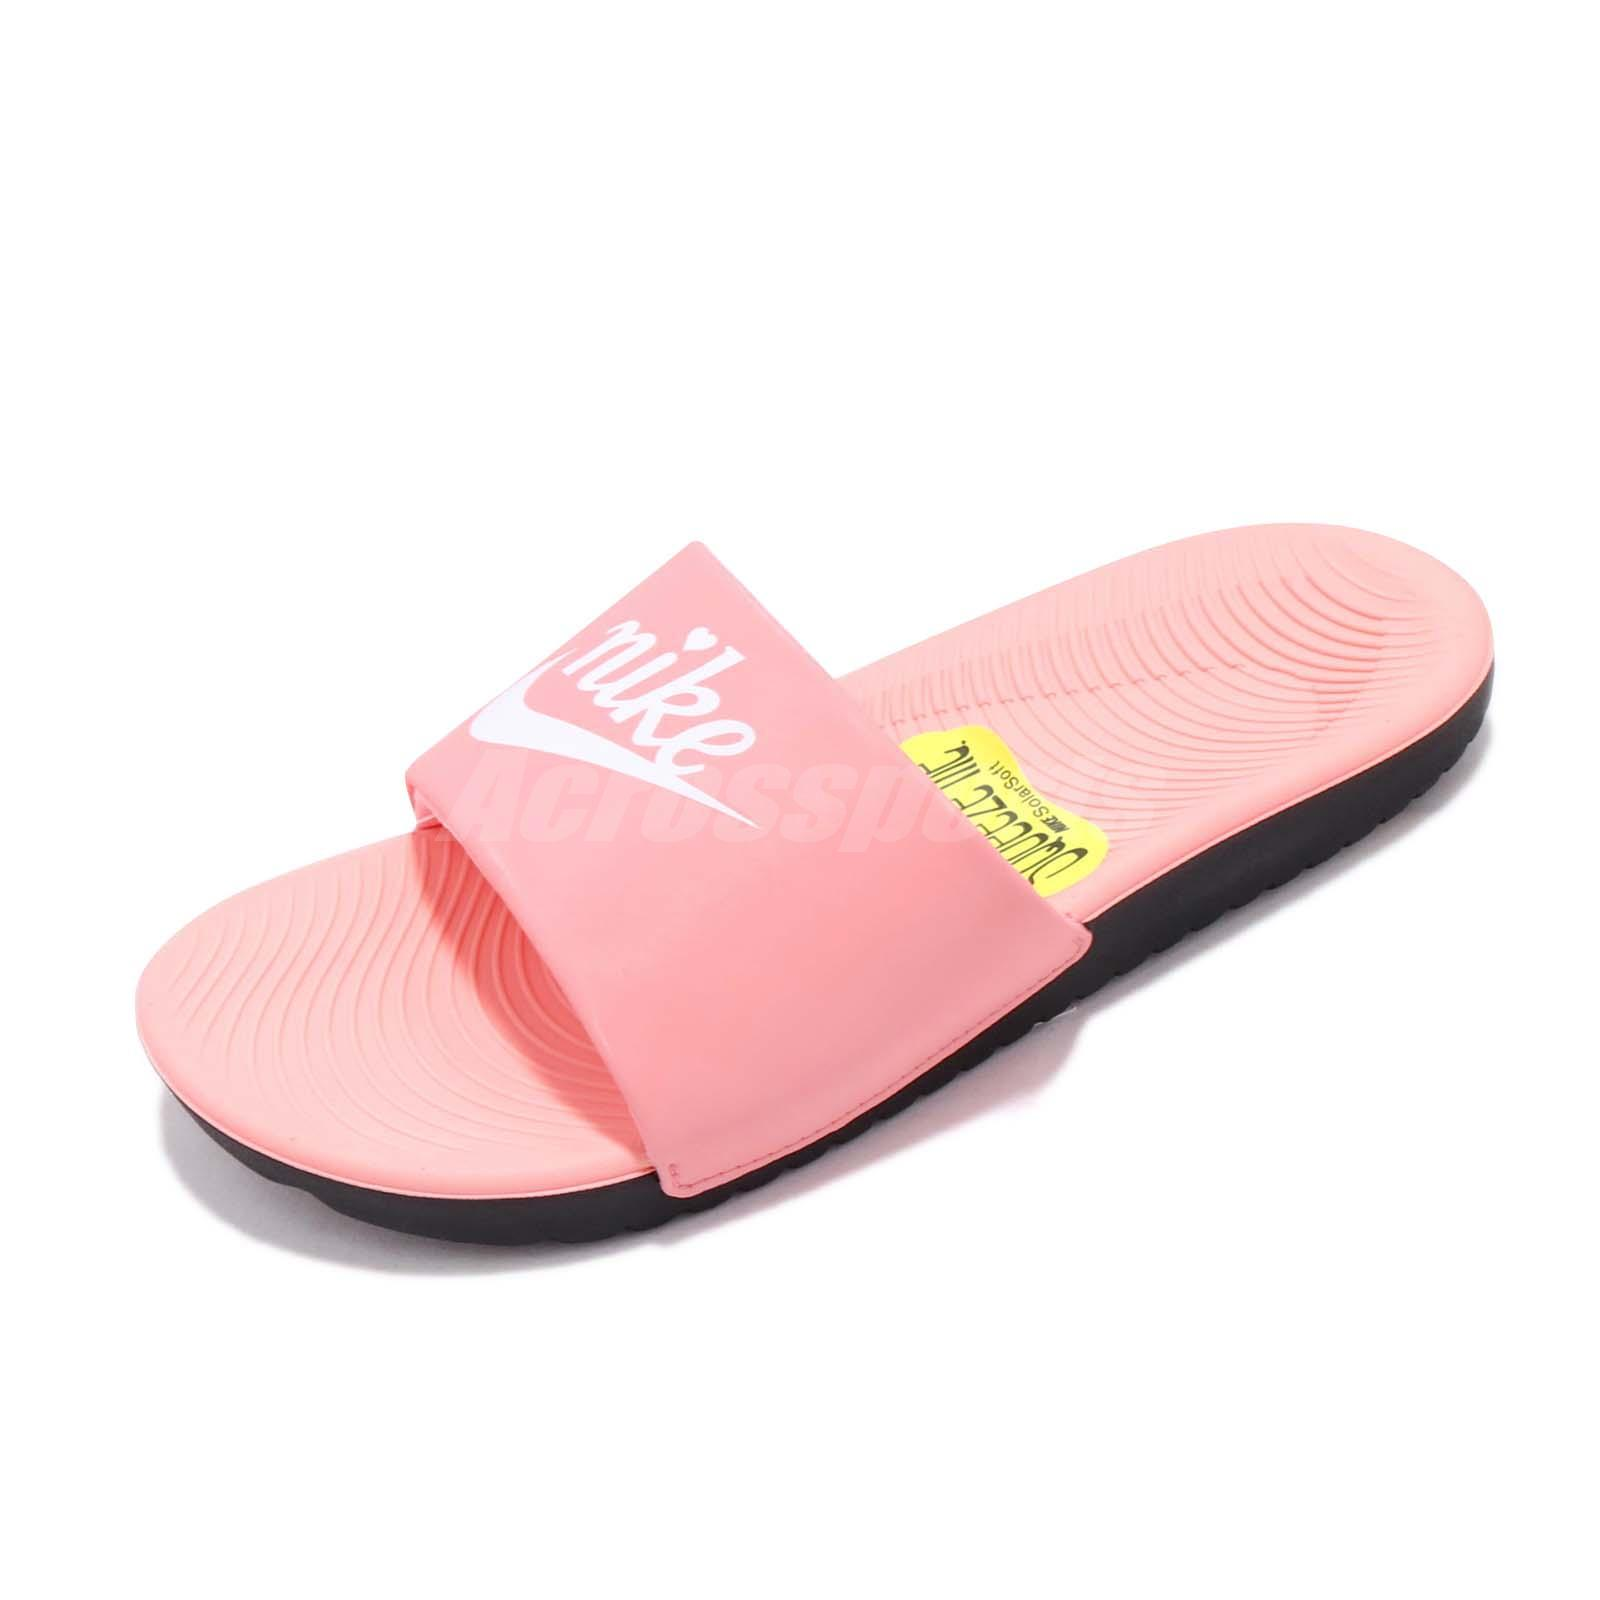 new concept d686d dfd54 Details about Nike Kawa Slide VDAY GS PS Kids Girls Slippers Slides  Valentines Day BQ7427-600